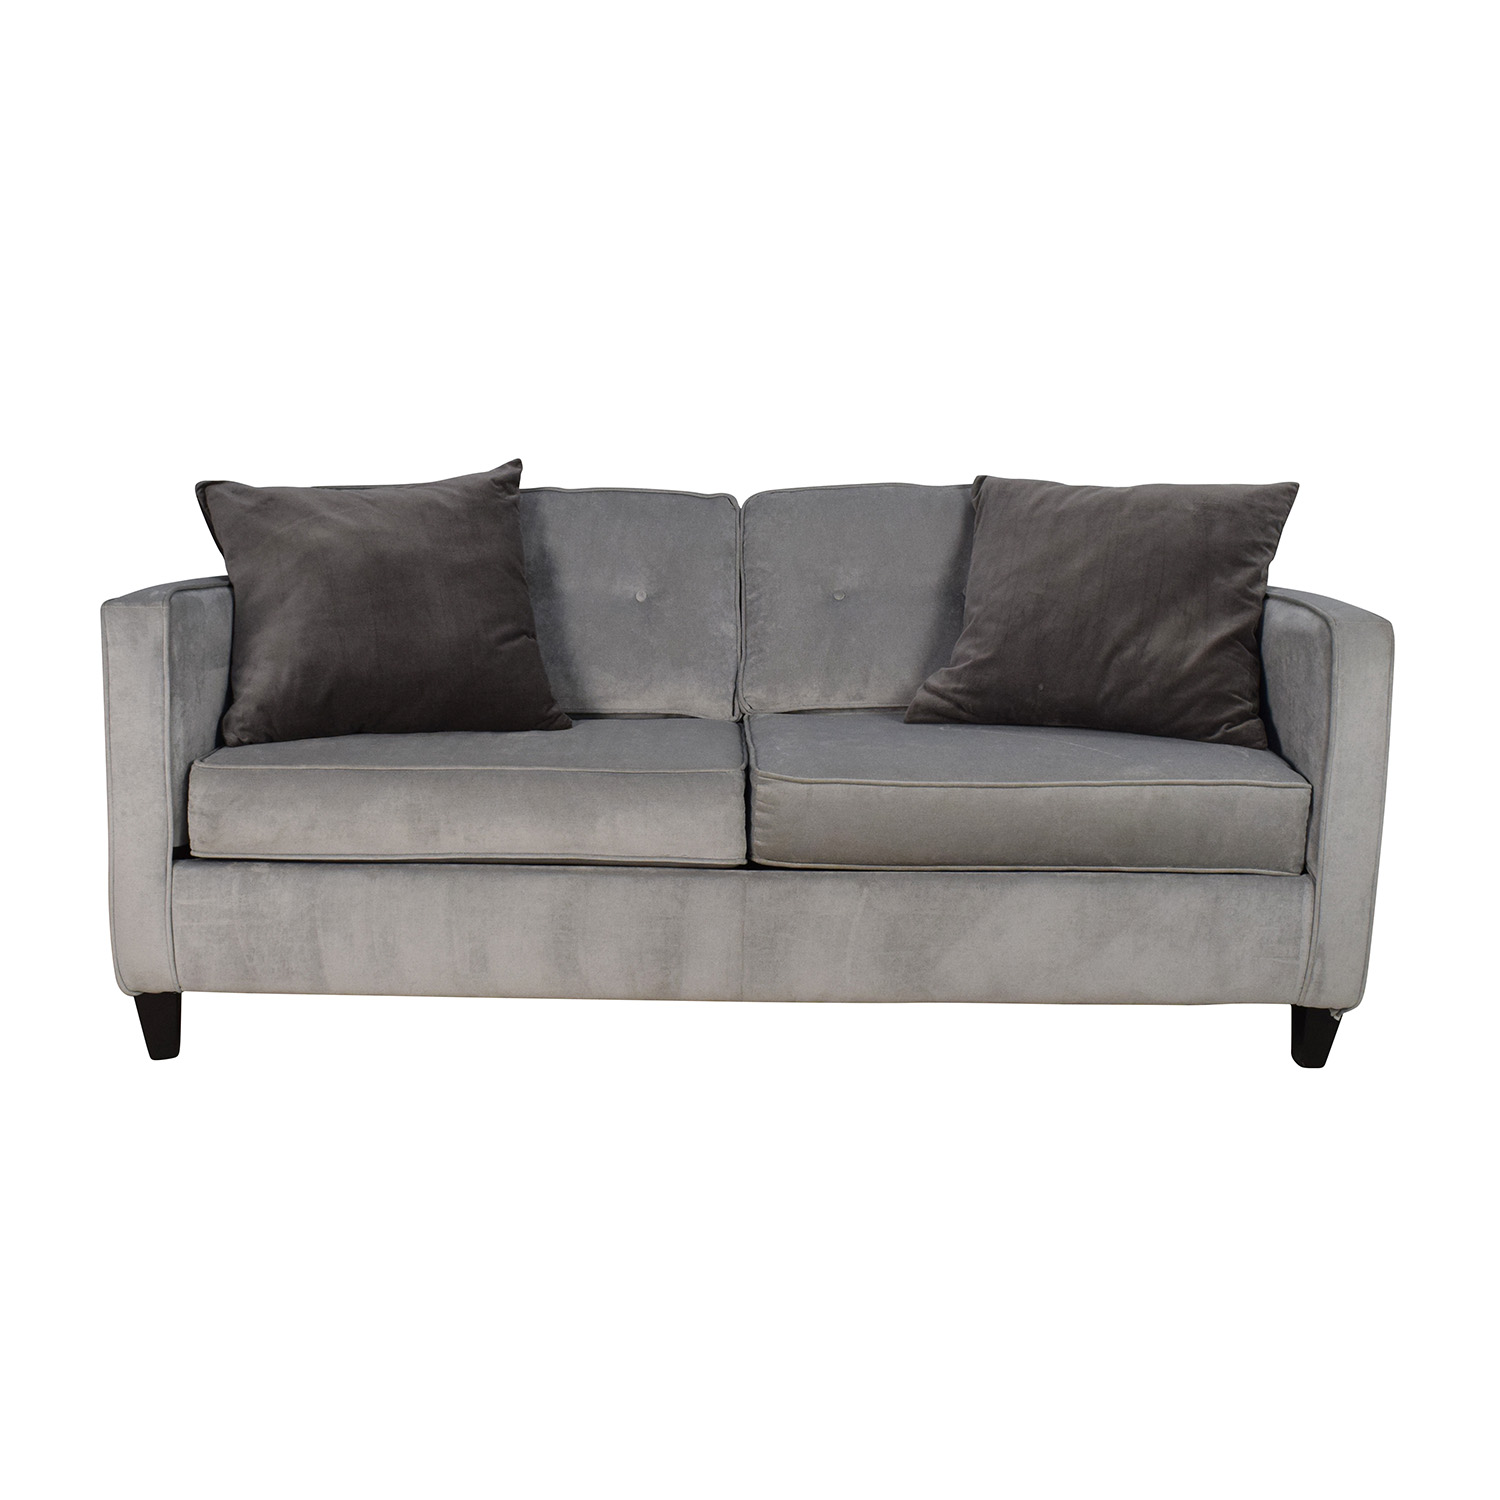 buy Raymour and Flanigan Raymour & Flanigan Kierland Couch online